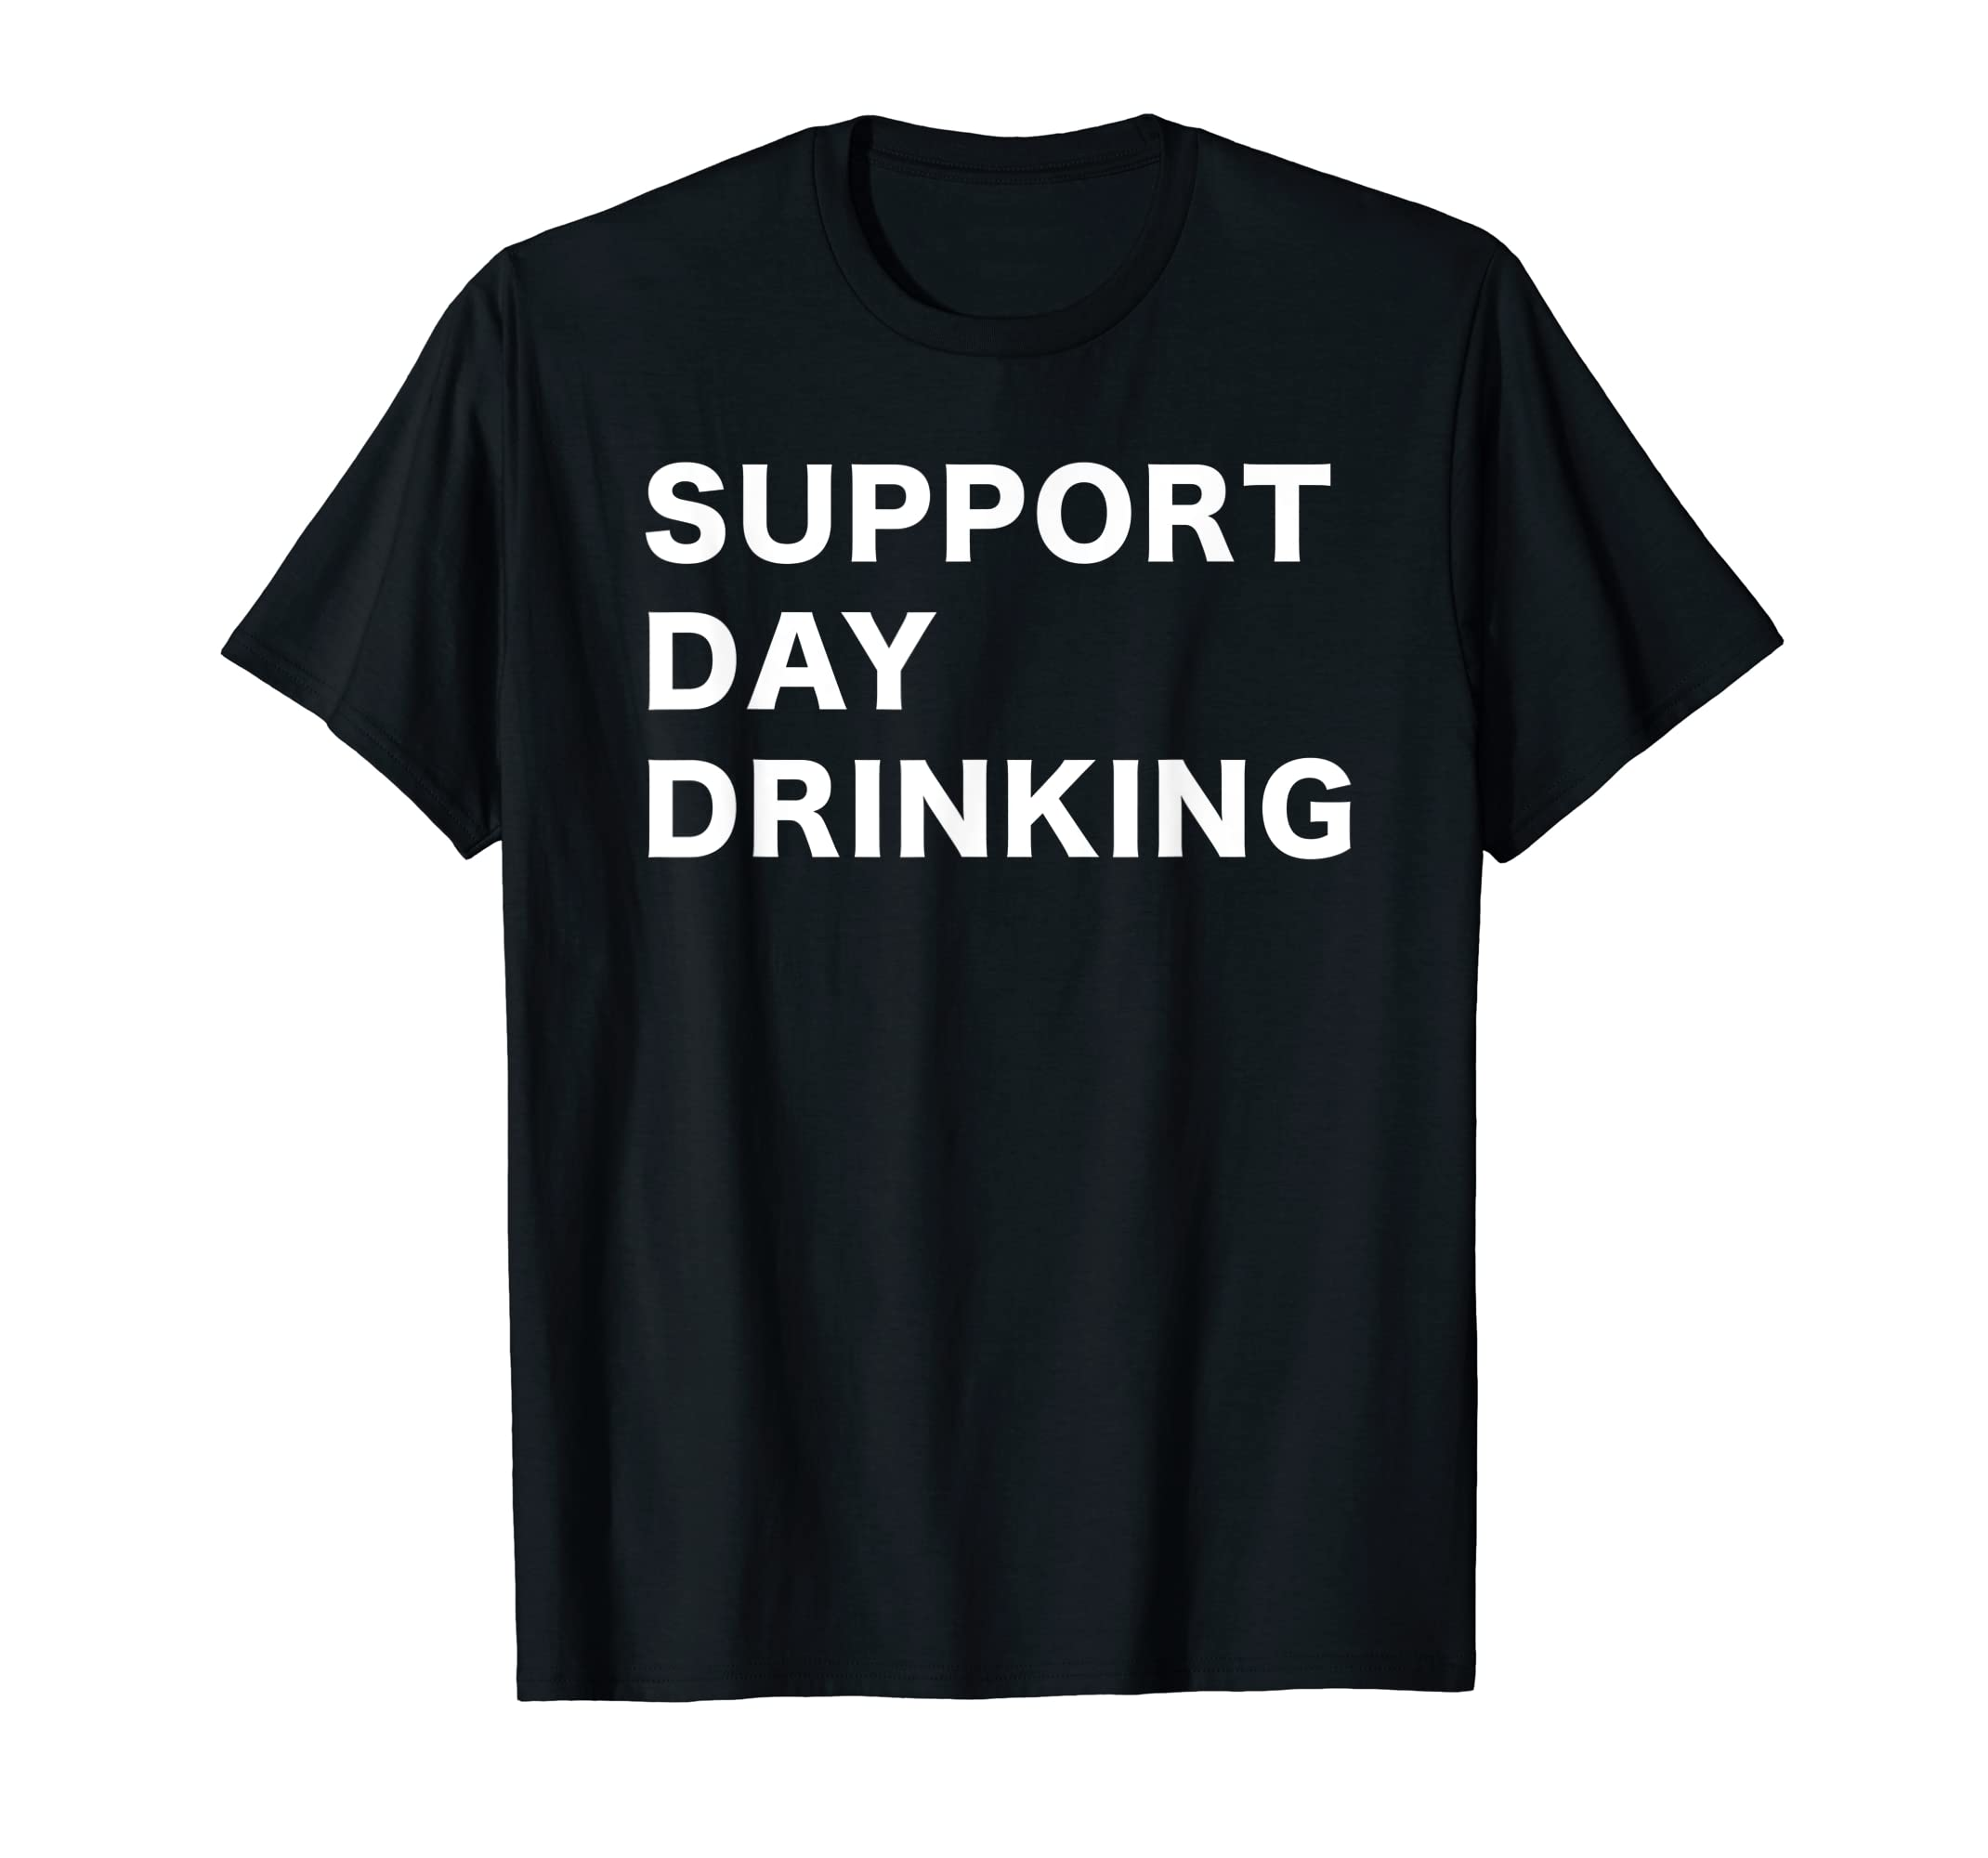 9ac249fa Amazon.com: Support Day Drinking Shirt, Day Drinking Shirt: Clothing